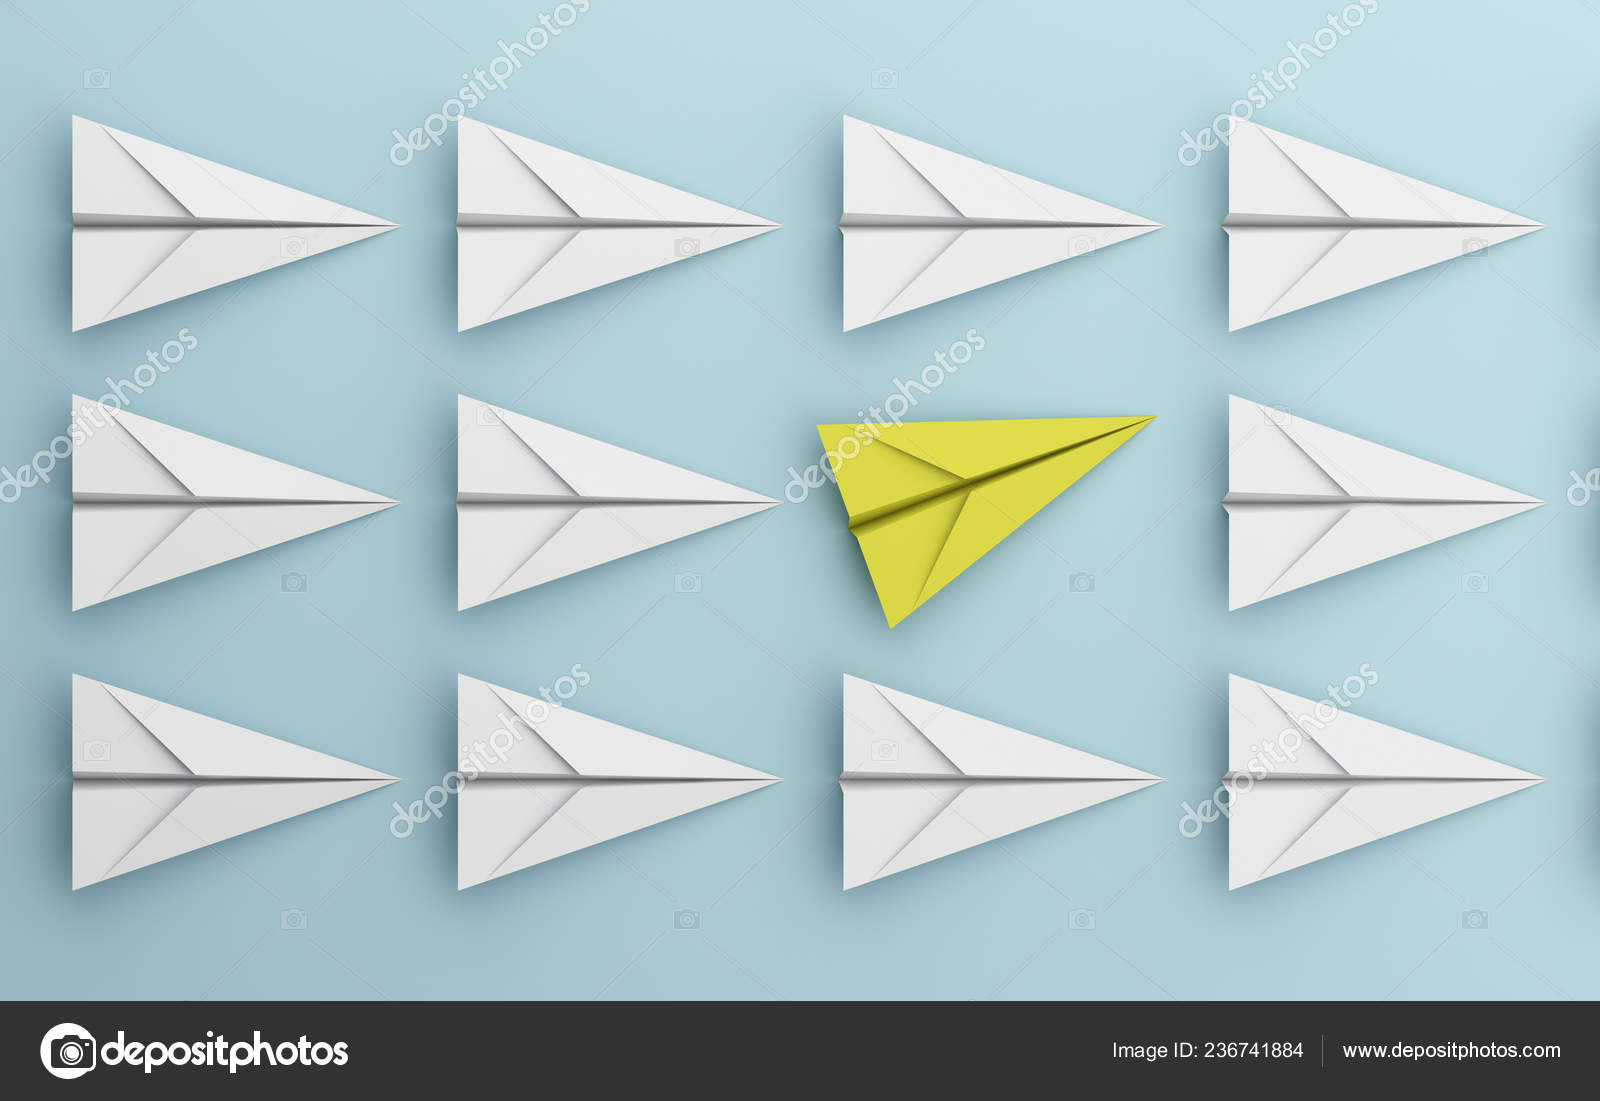 Leadership Different Concept Yellow White Paper Airplane